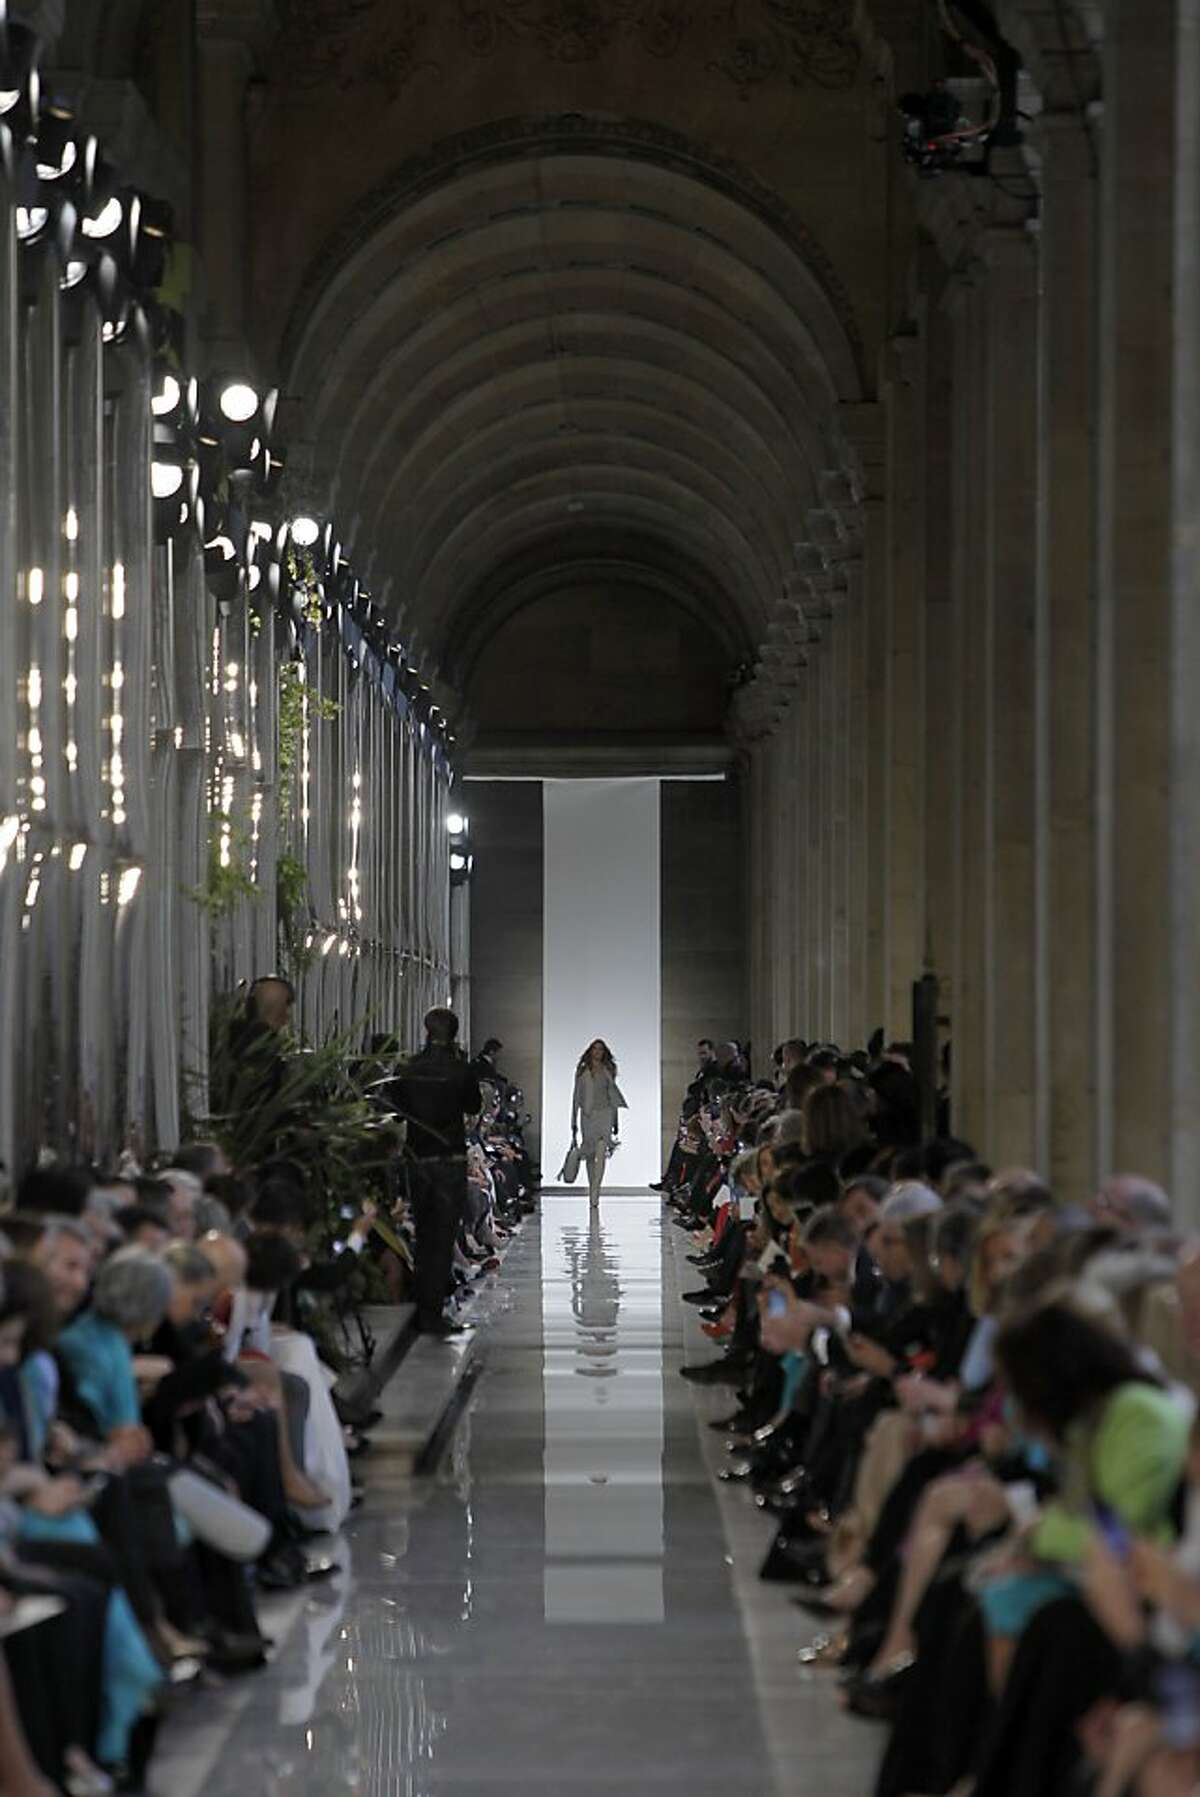 A model displays a creation as part of Salvatore Ferragamo Cruise 2013 fashion show at Louvre Museum in Paris, France, Tuesday, June 12, 2012. (AP Photo/Francois Mori)